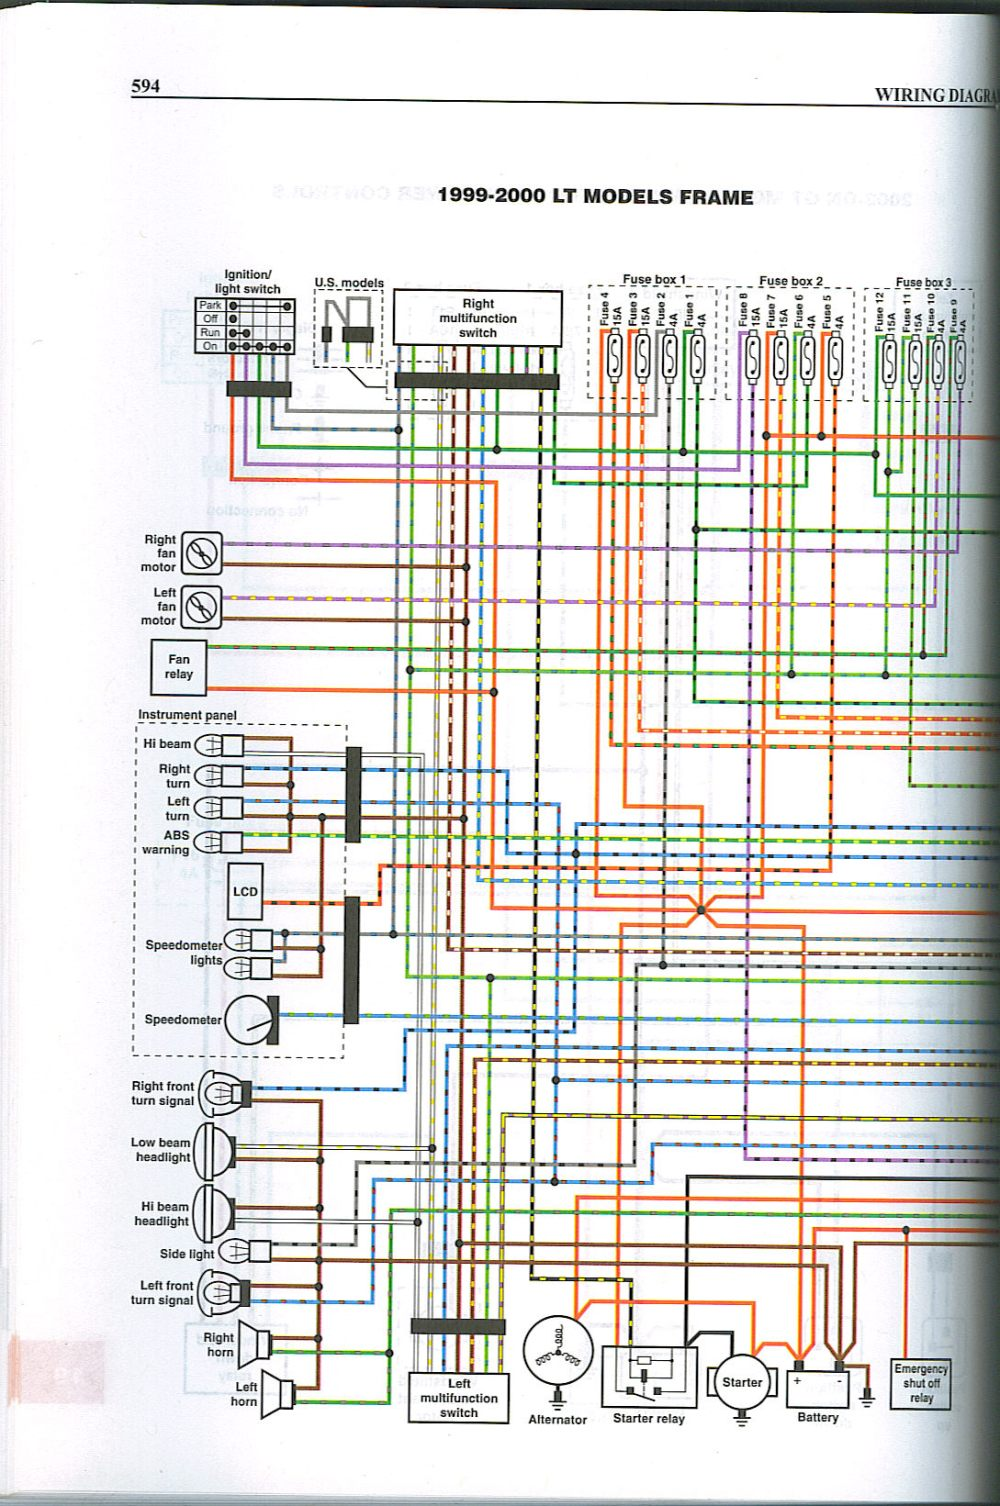 medium resolution of wiring diagram bmw k1200lt wiring diagram inside k1200lt wiring diagram wiring diagram for you wiring diagram